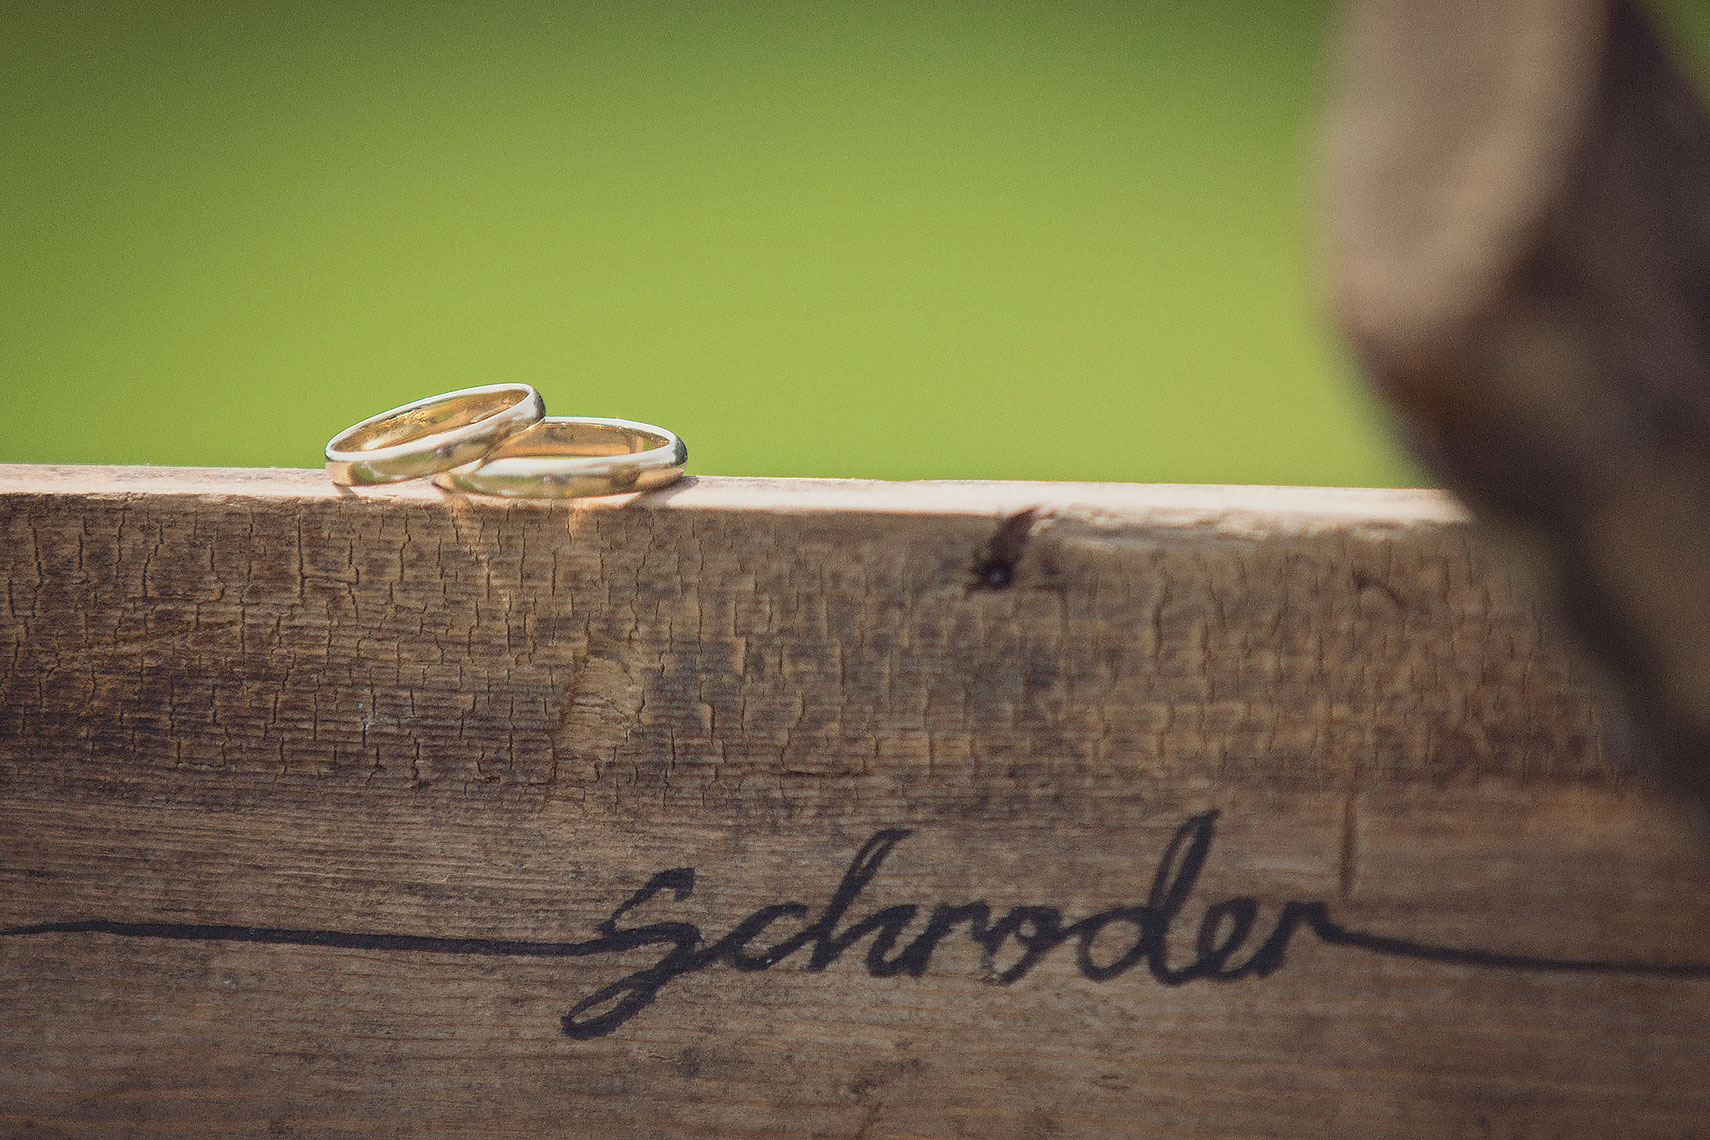 Gold wedding rings resting on wooden fixture with names of bride and groom carved into front